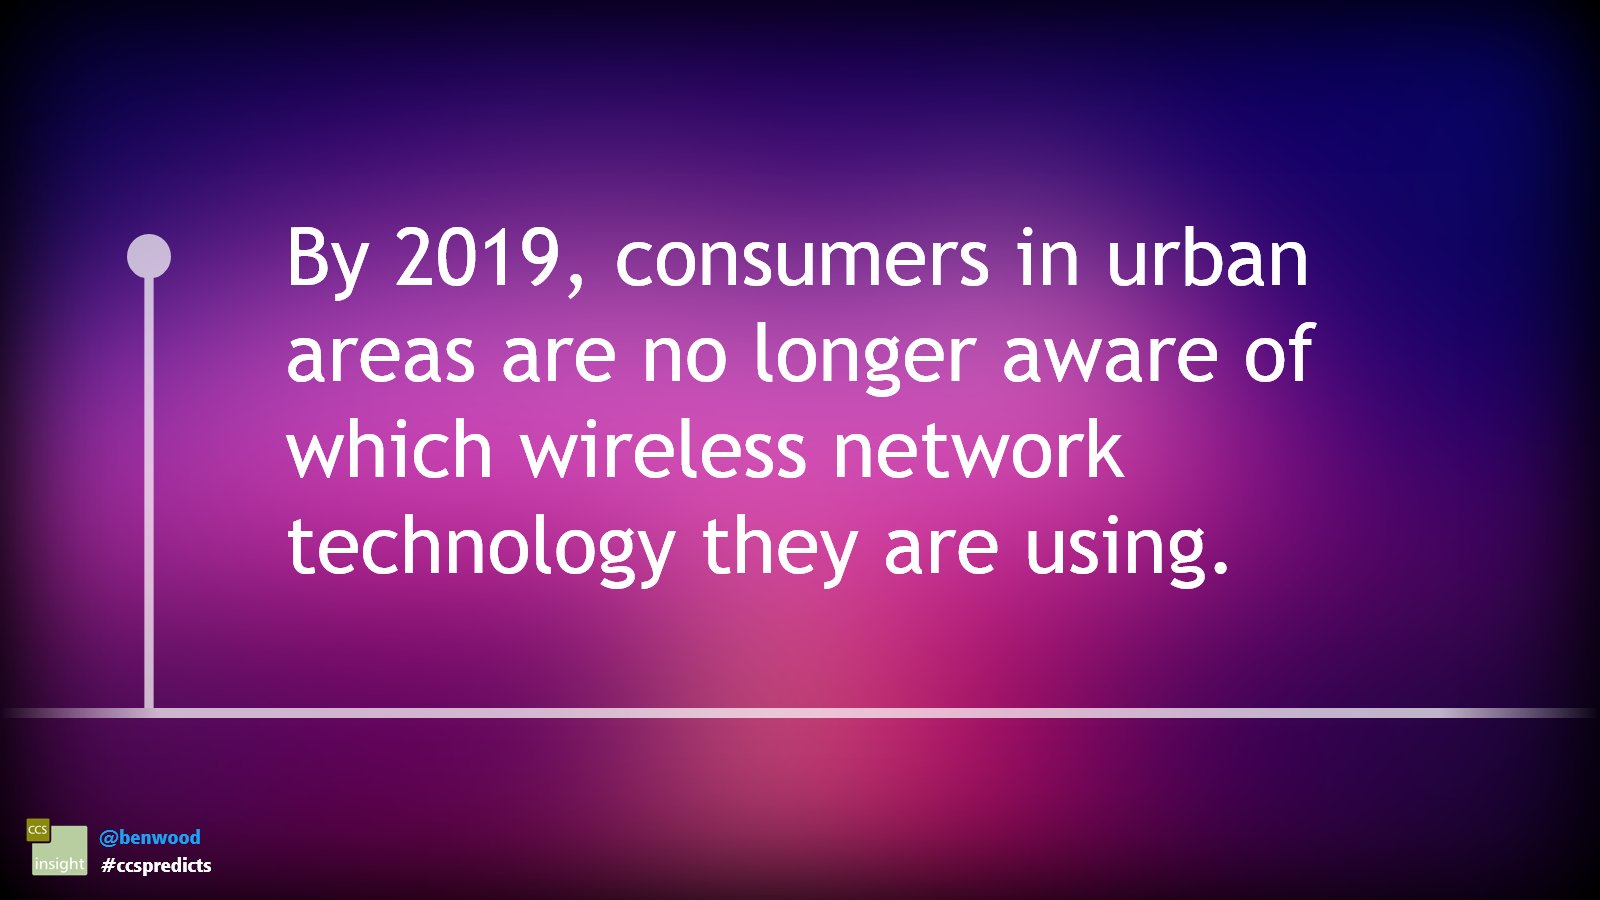 By 2019, consumers in urban areas are no longer aware of which wireless network technology they are using #ccspredicts https://t.co/y24ygYuHVW